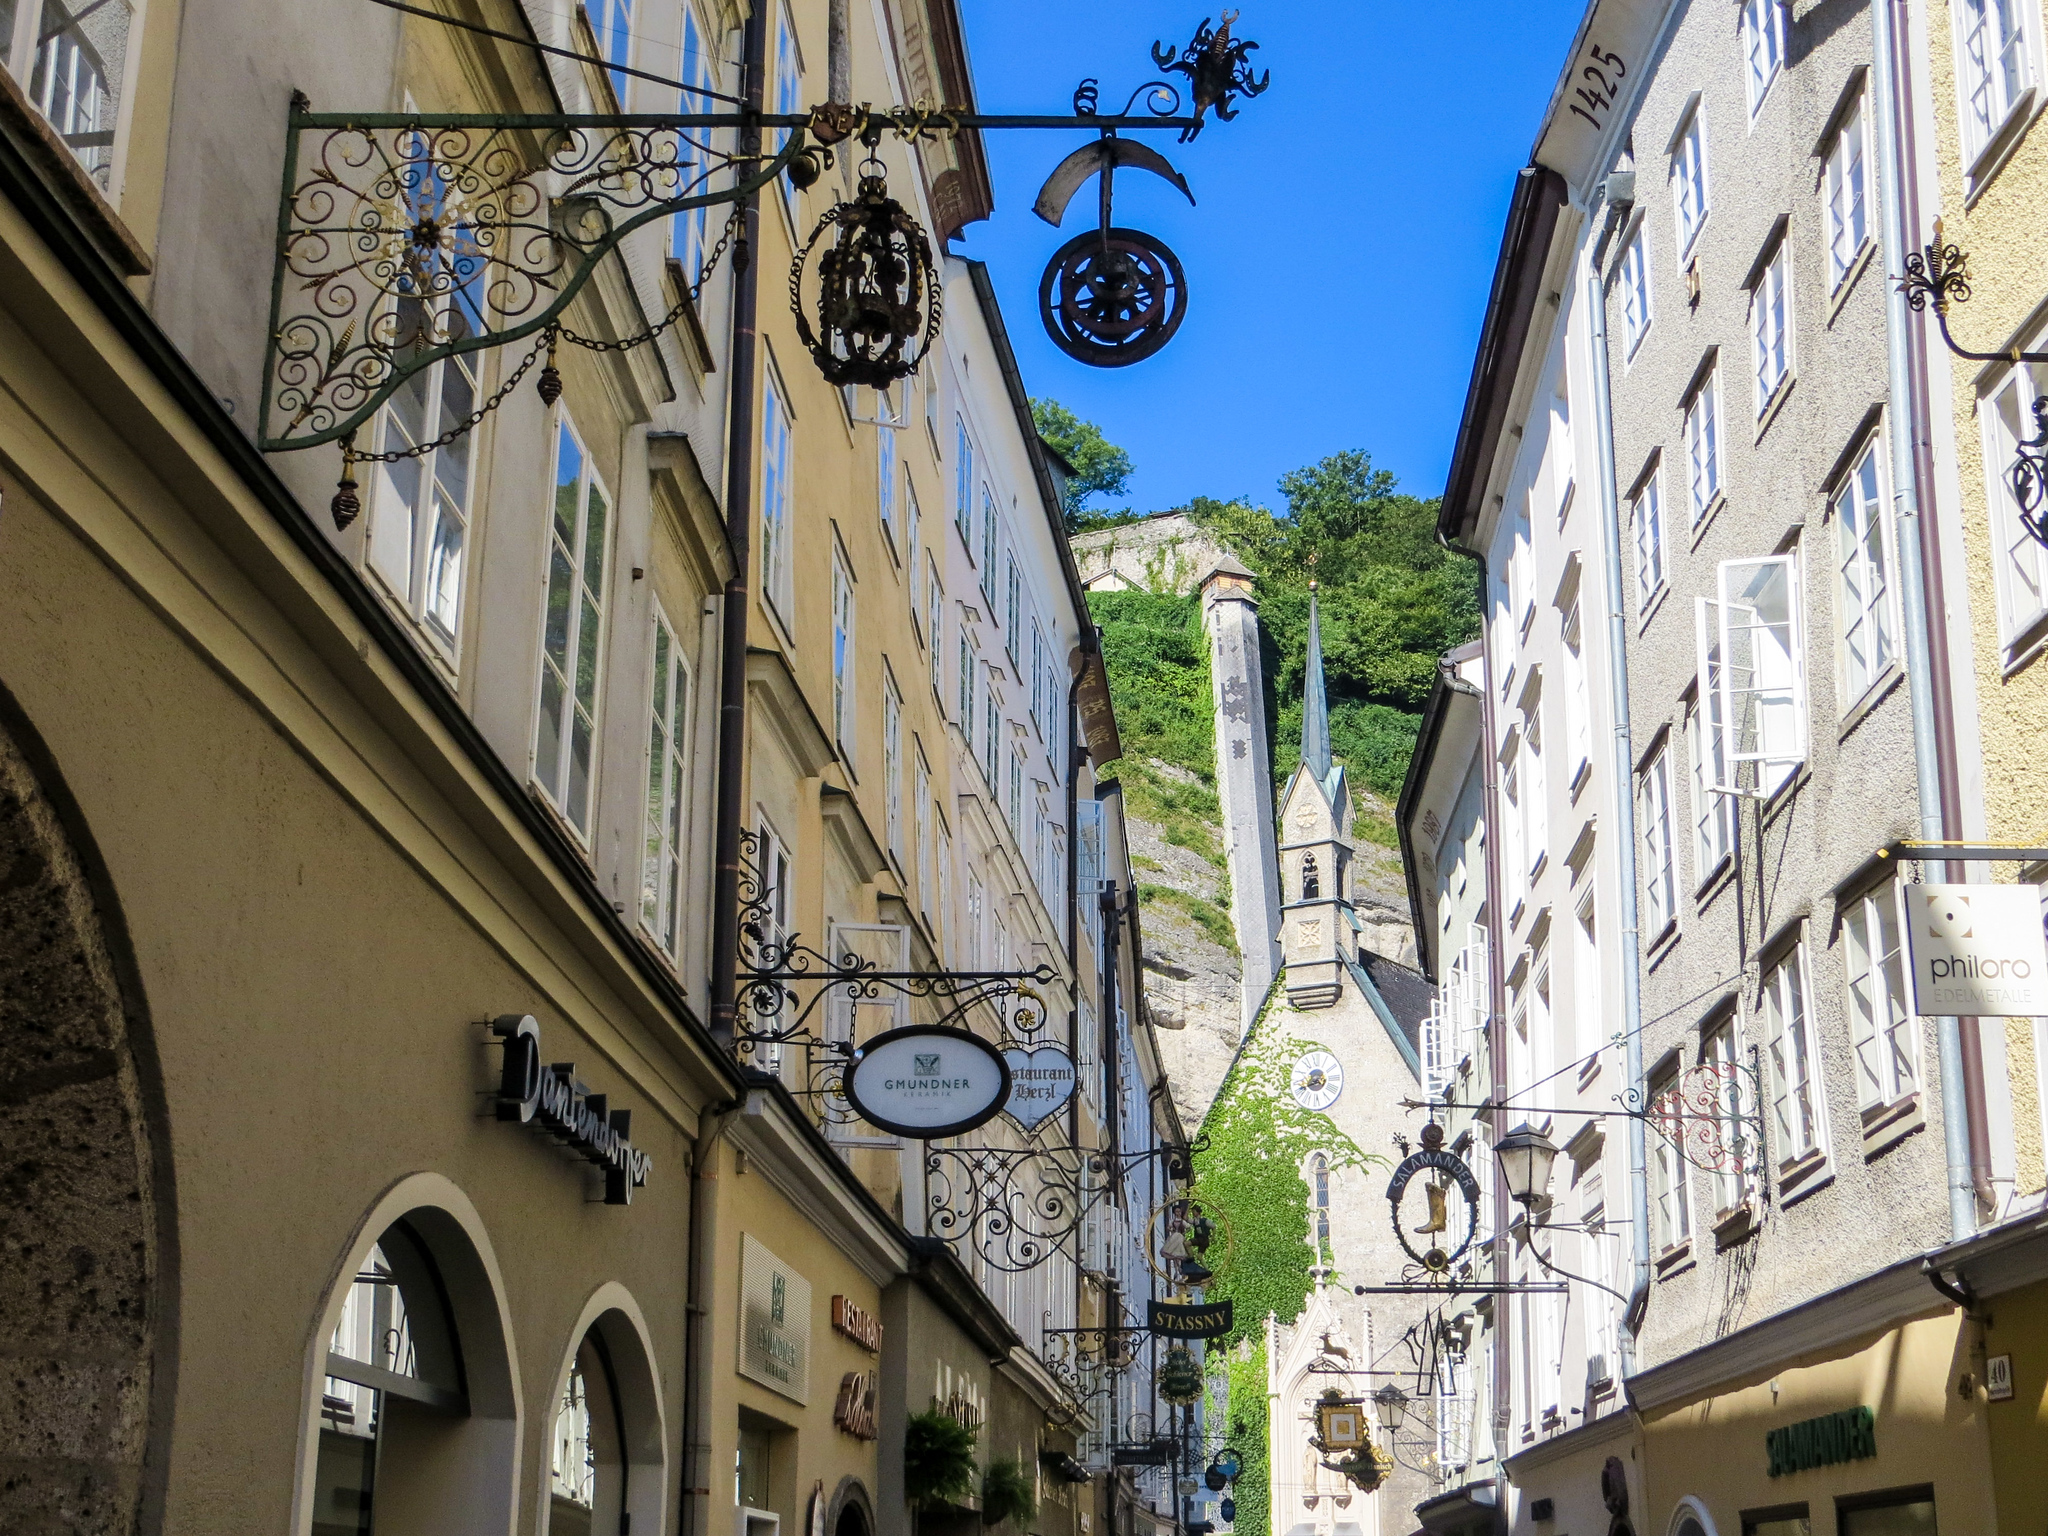 14 days in europe itinerary: don't skip small cities like salzburg